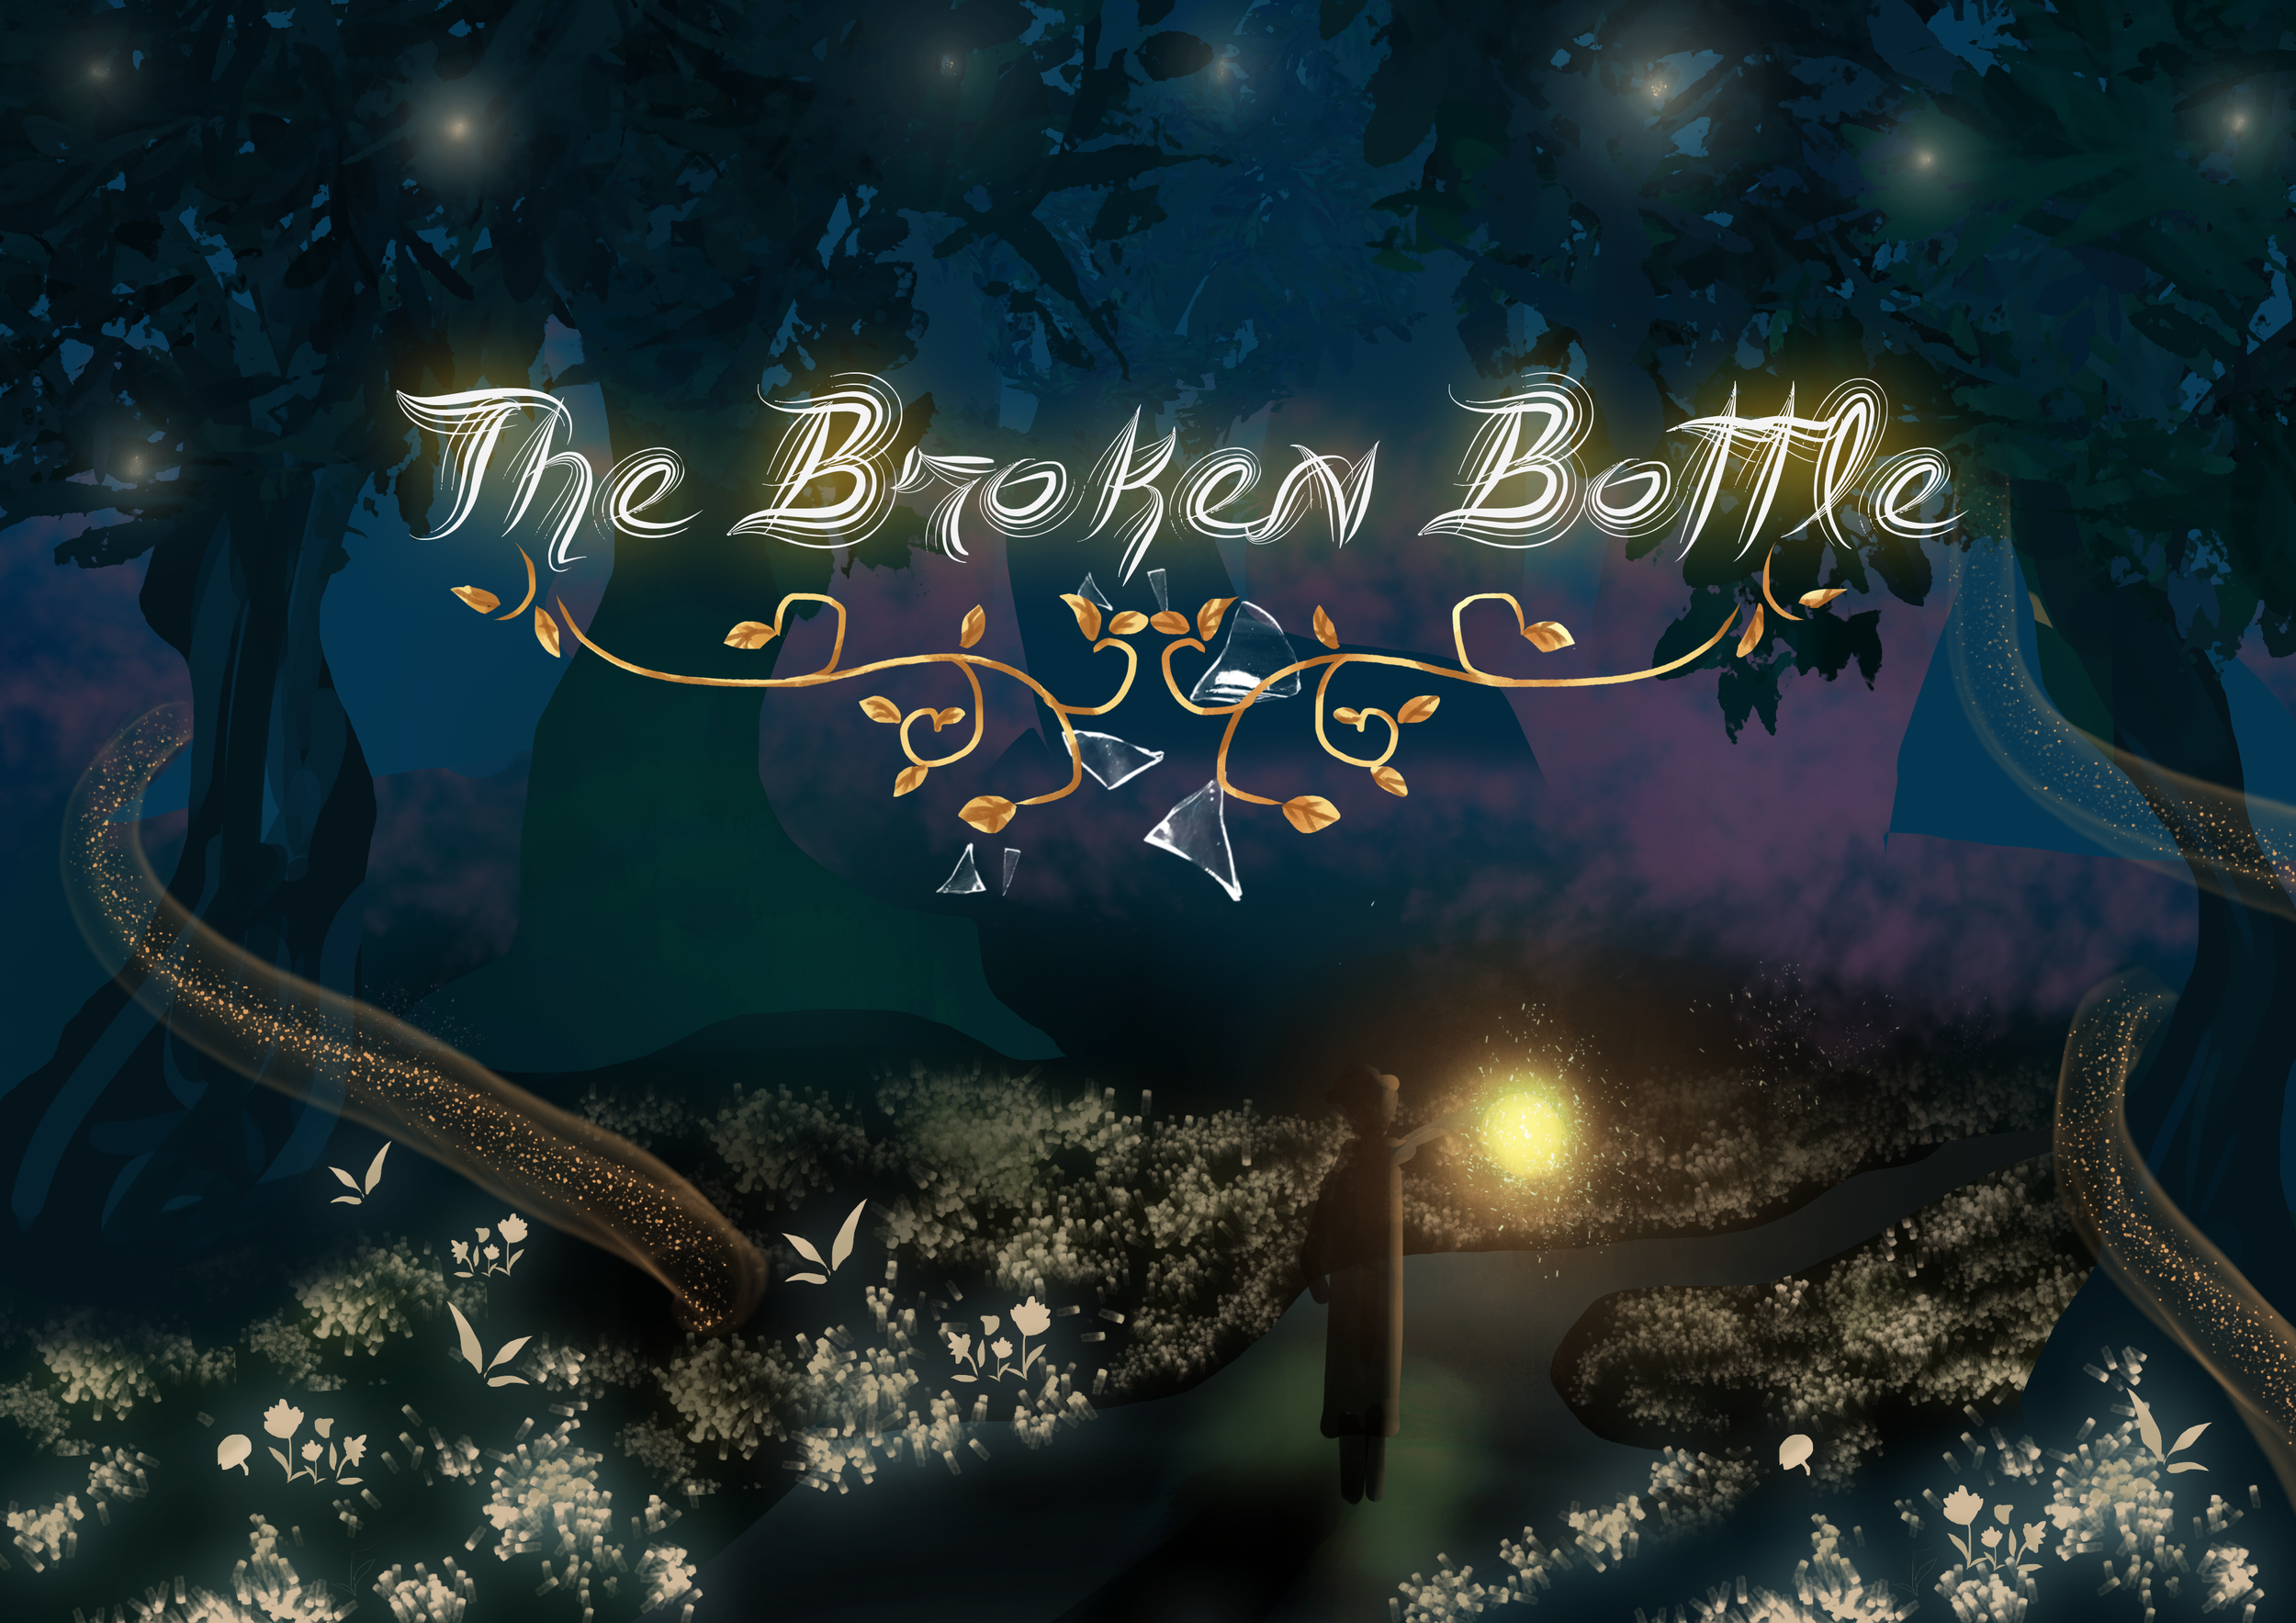 Our beautiful title screen by Anh Luu